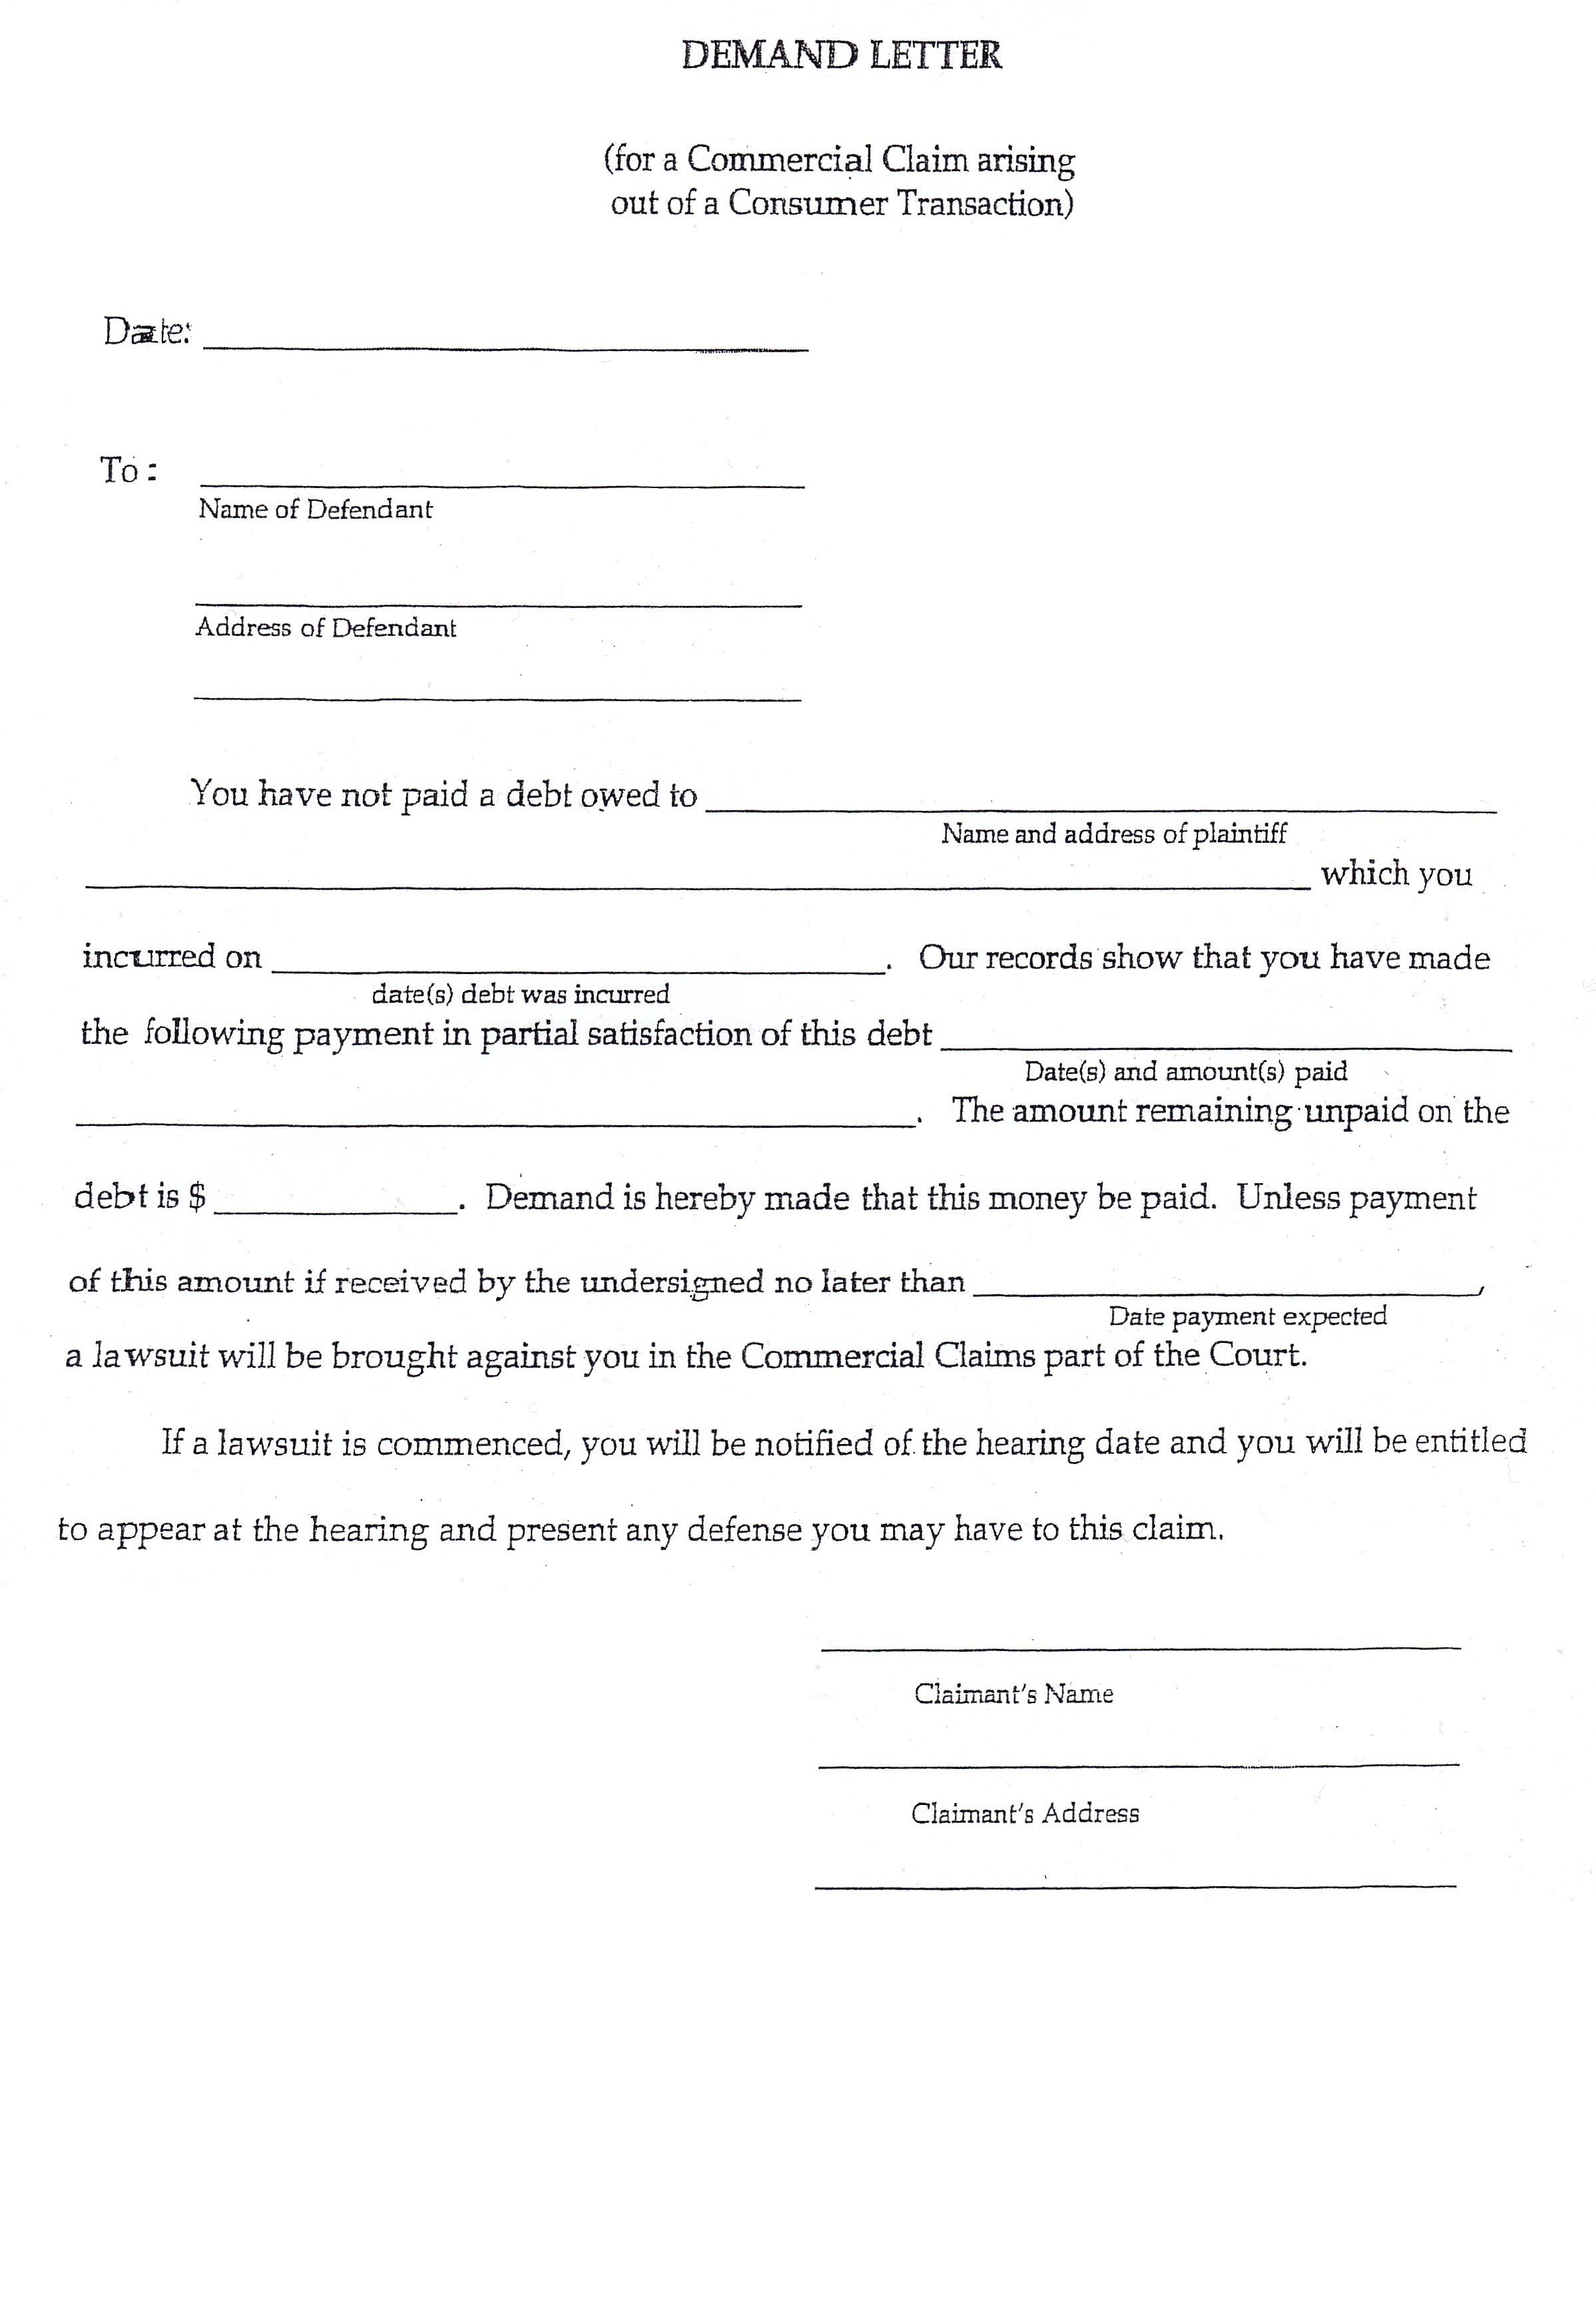 Small Claims Court Letter Of Demand Template - How to Write A Letter to Claim Money Gallery Letter format formal